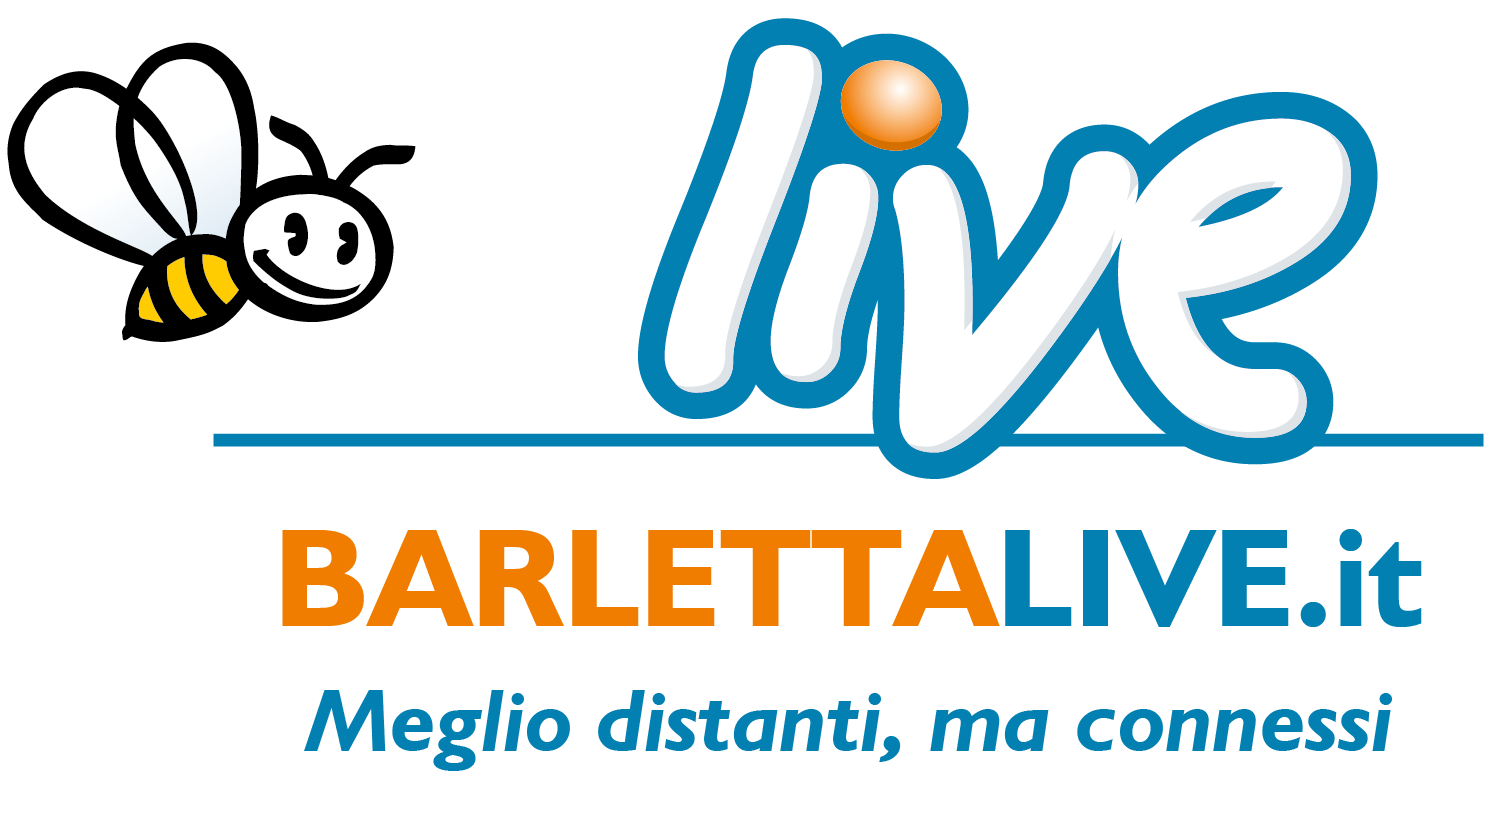 BarlettaLive.it